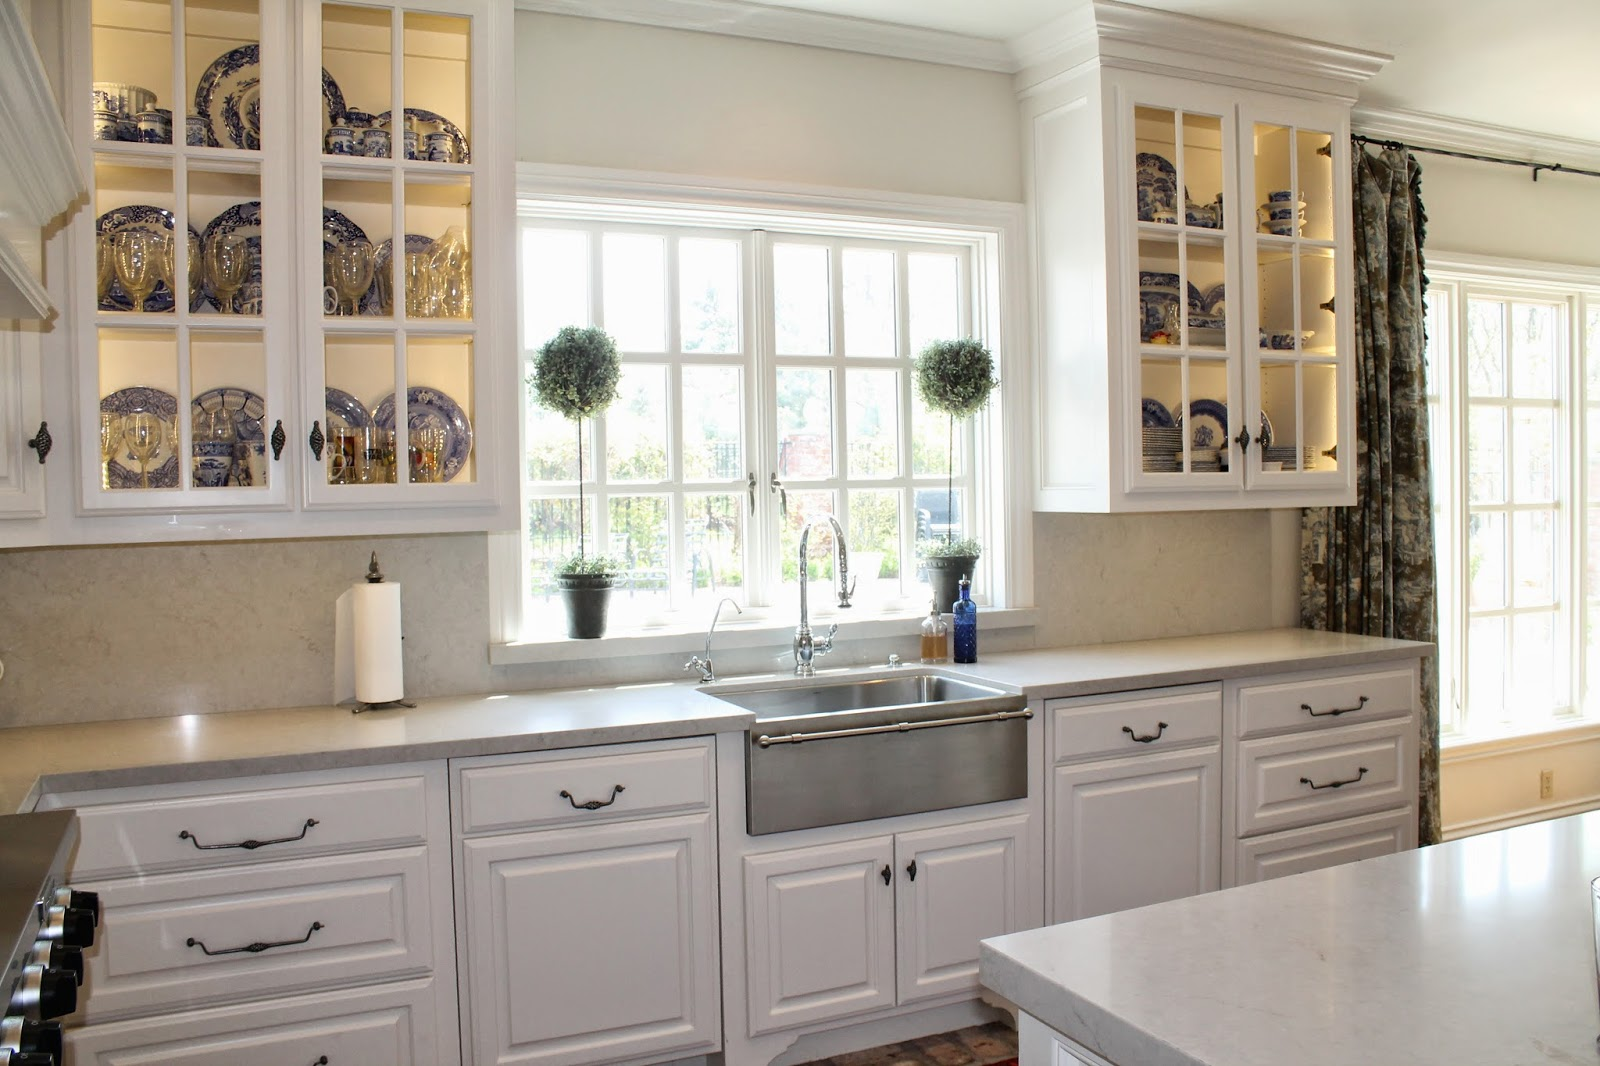 the story of kitchen remodel it is kitchen remodel okc The Story of an Eleven Gables Kitchen Remodel It is finished